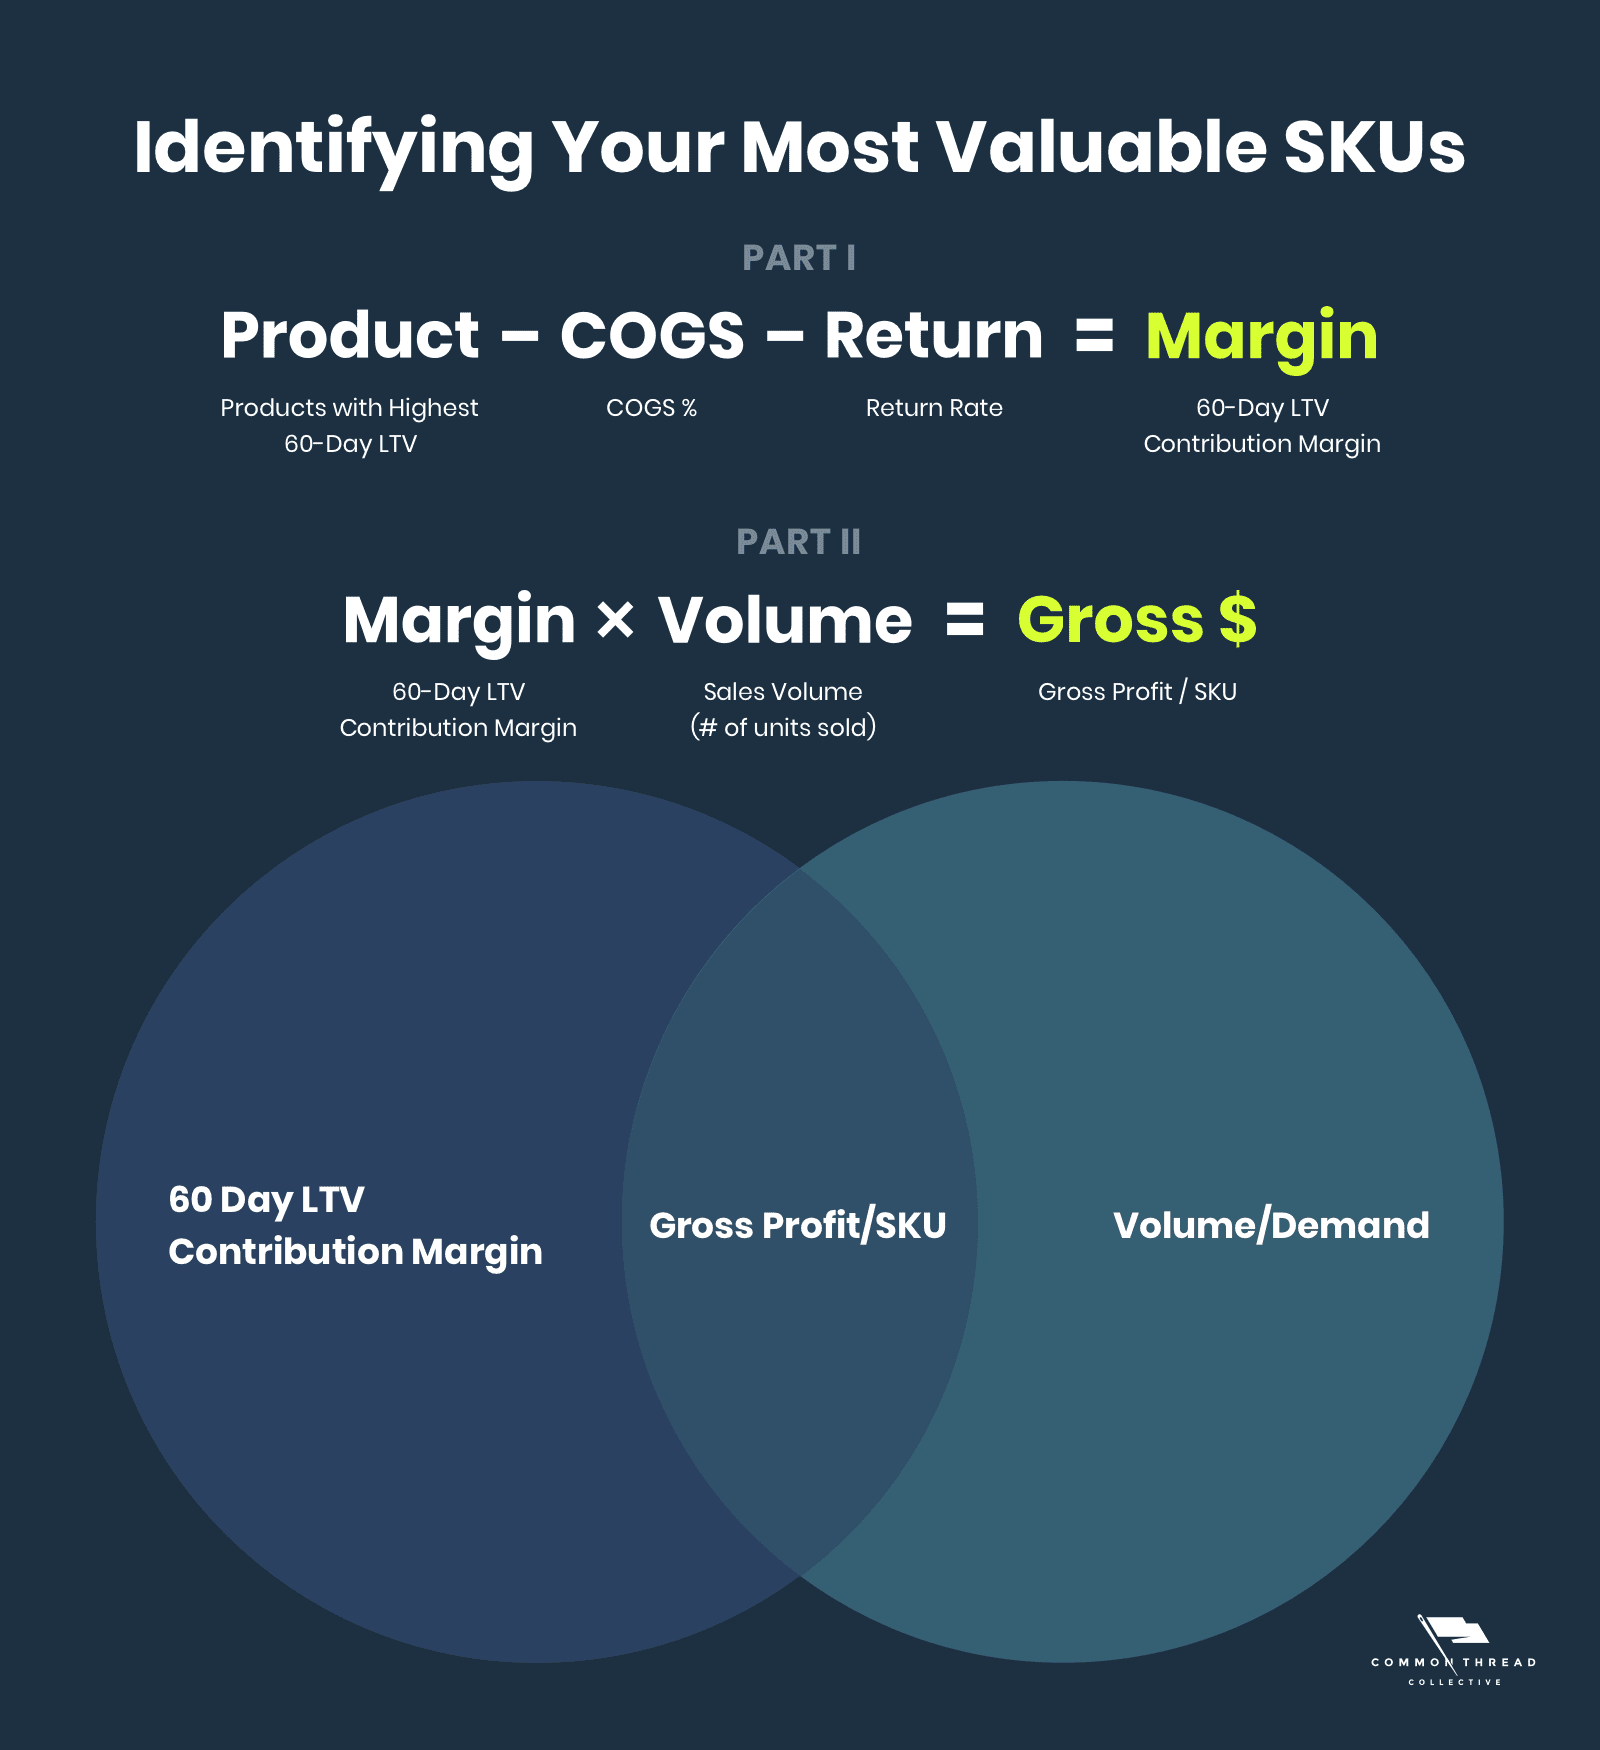 Identifying Your Most-Valuable SKUs for social media advertising